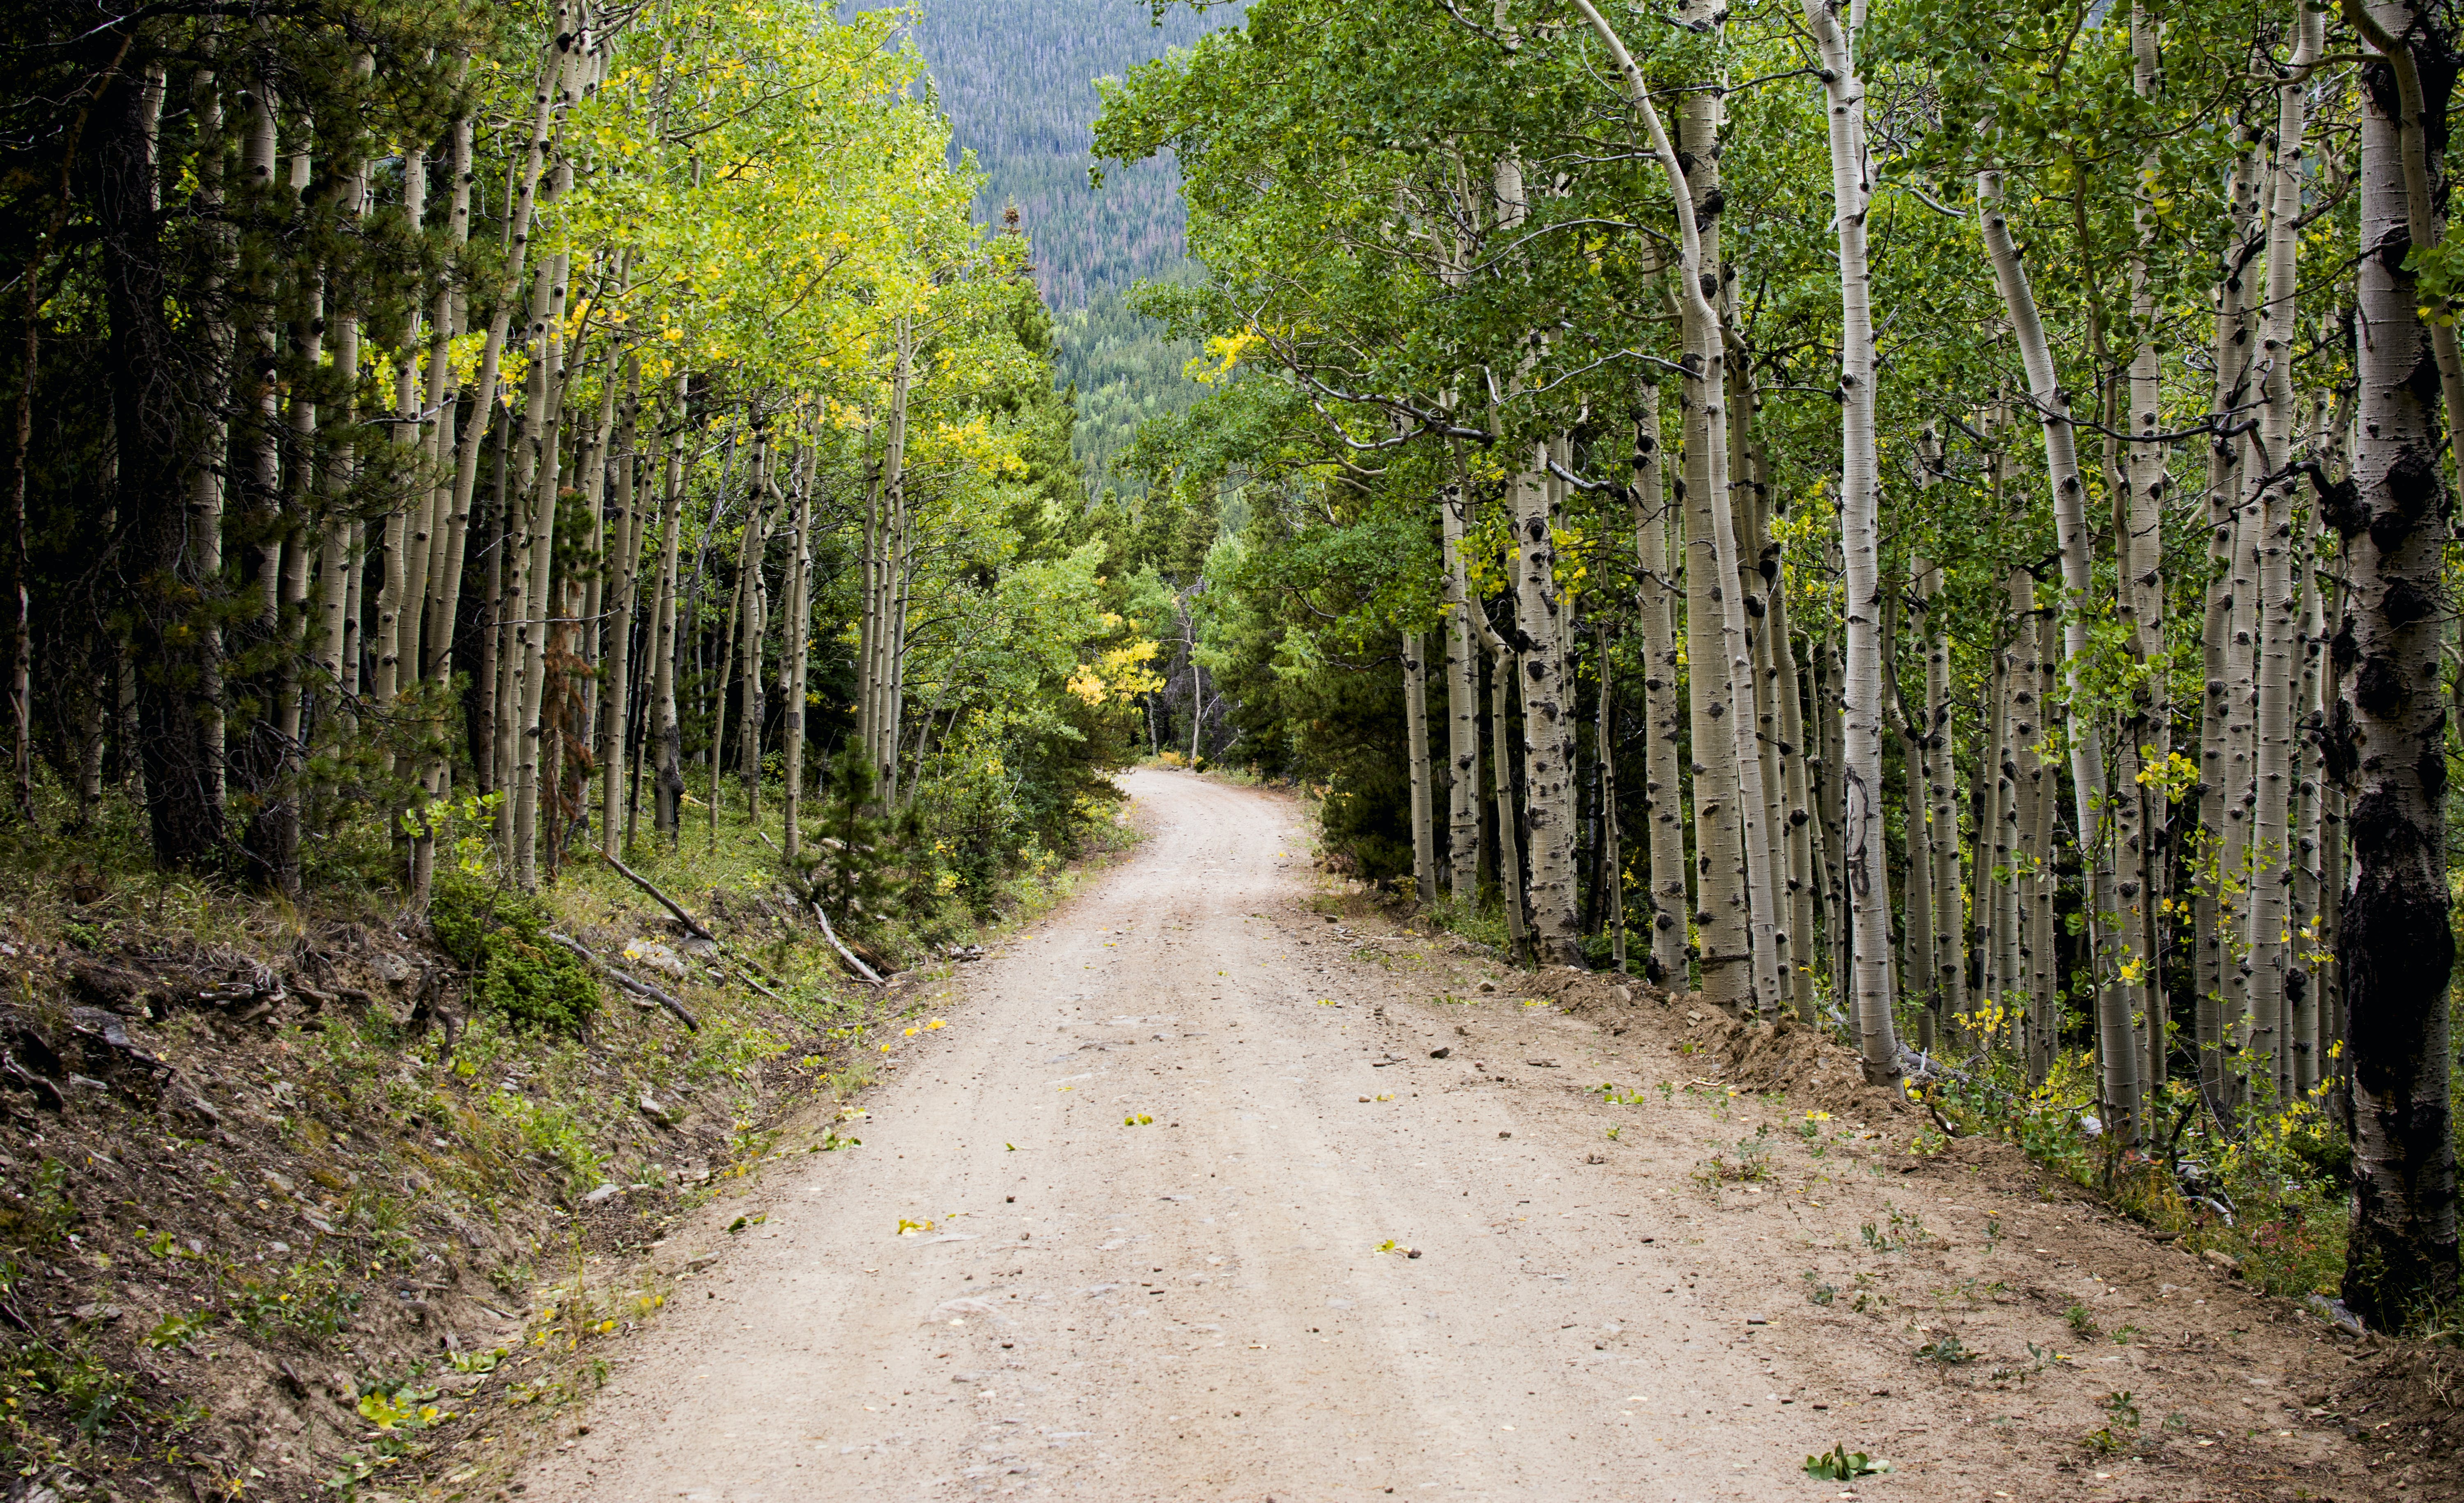 Empty Road Between Birch Trees during Daytime